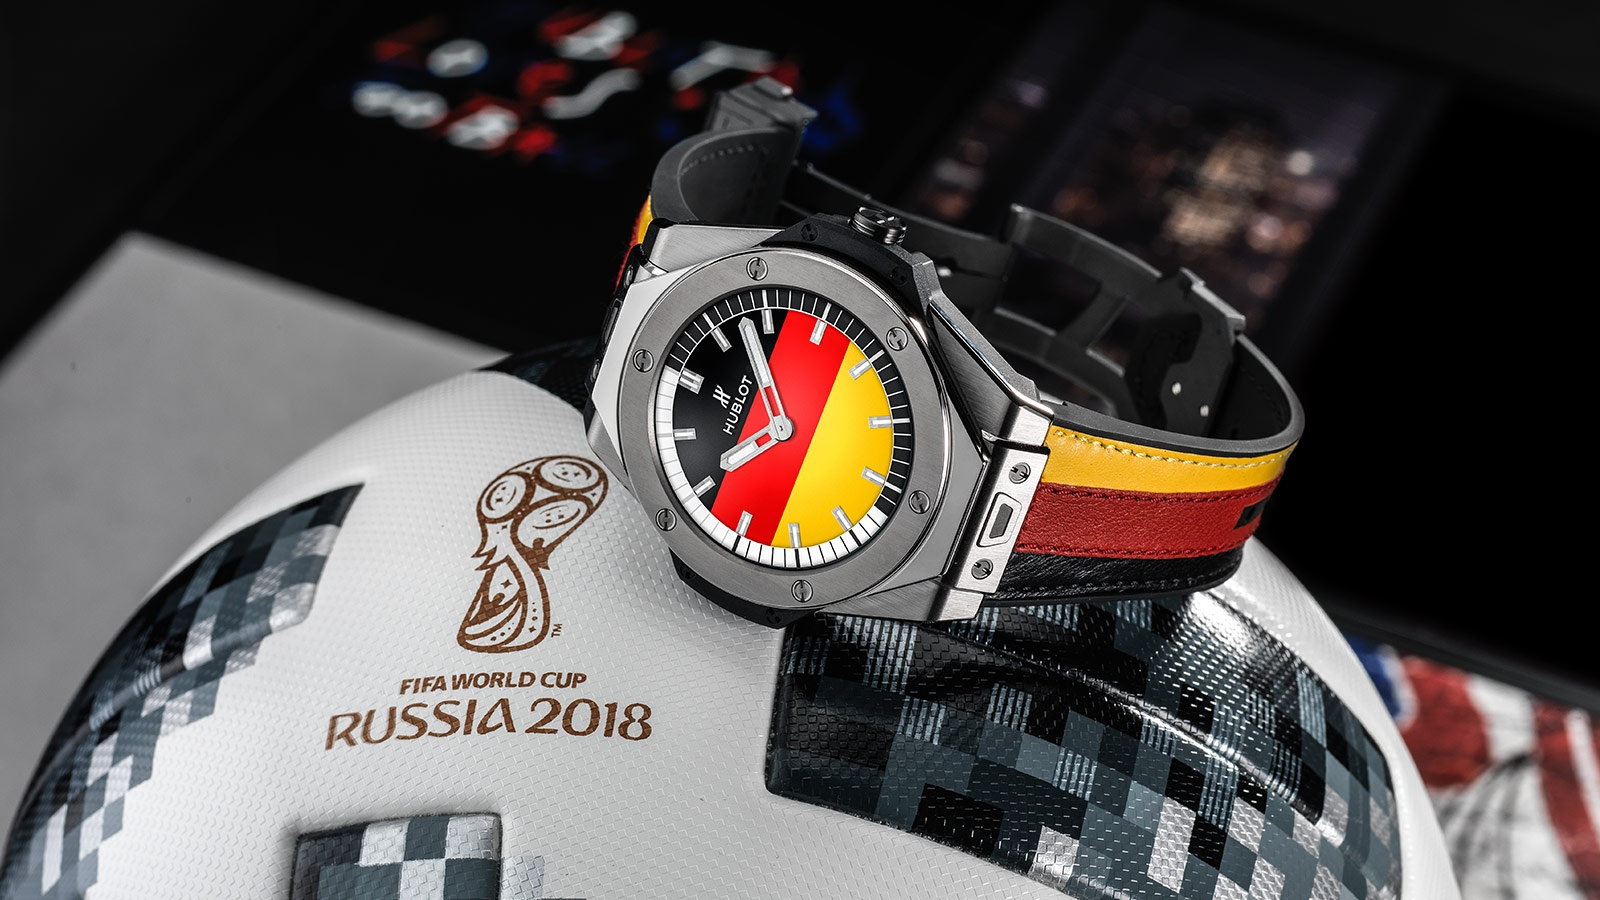 FIFA World Cup refs will wear custom watches running Wear OS